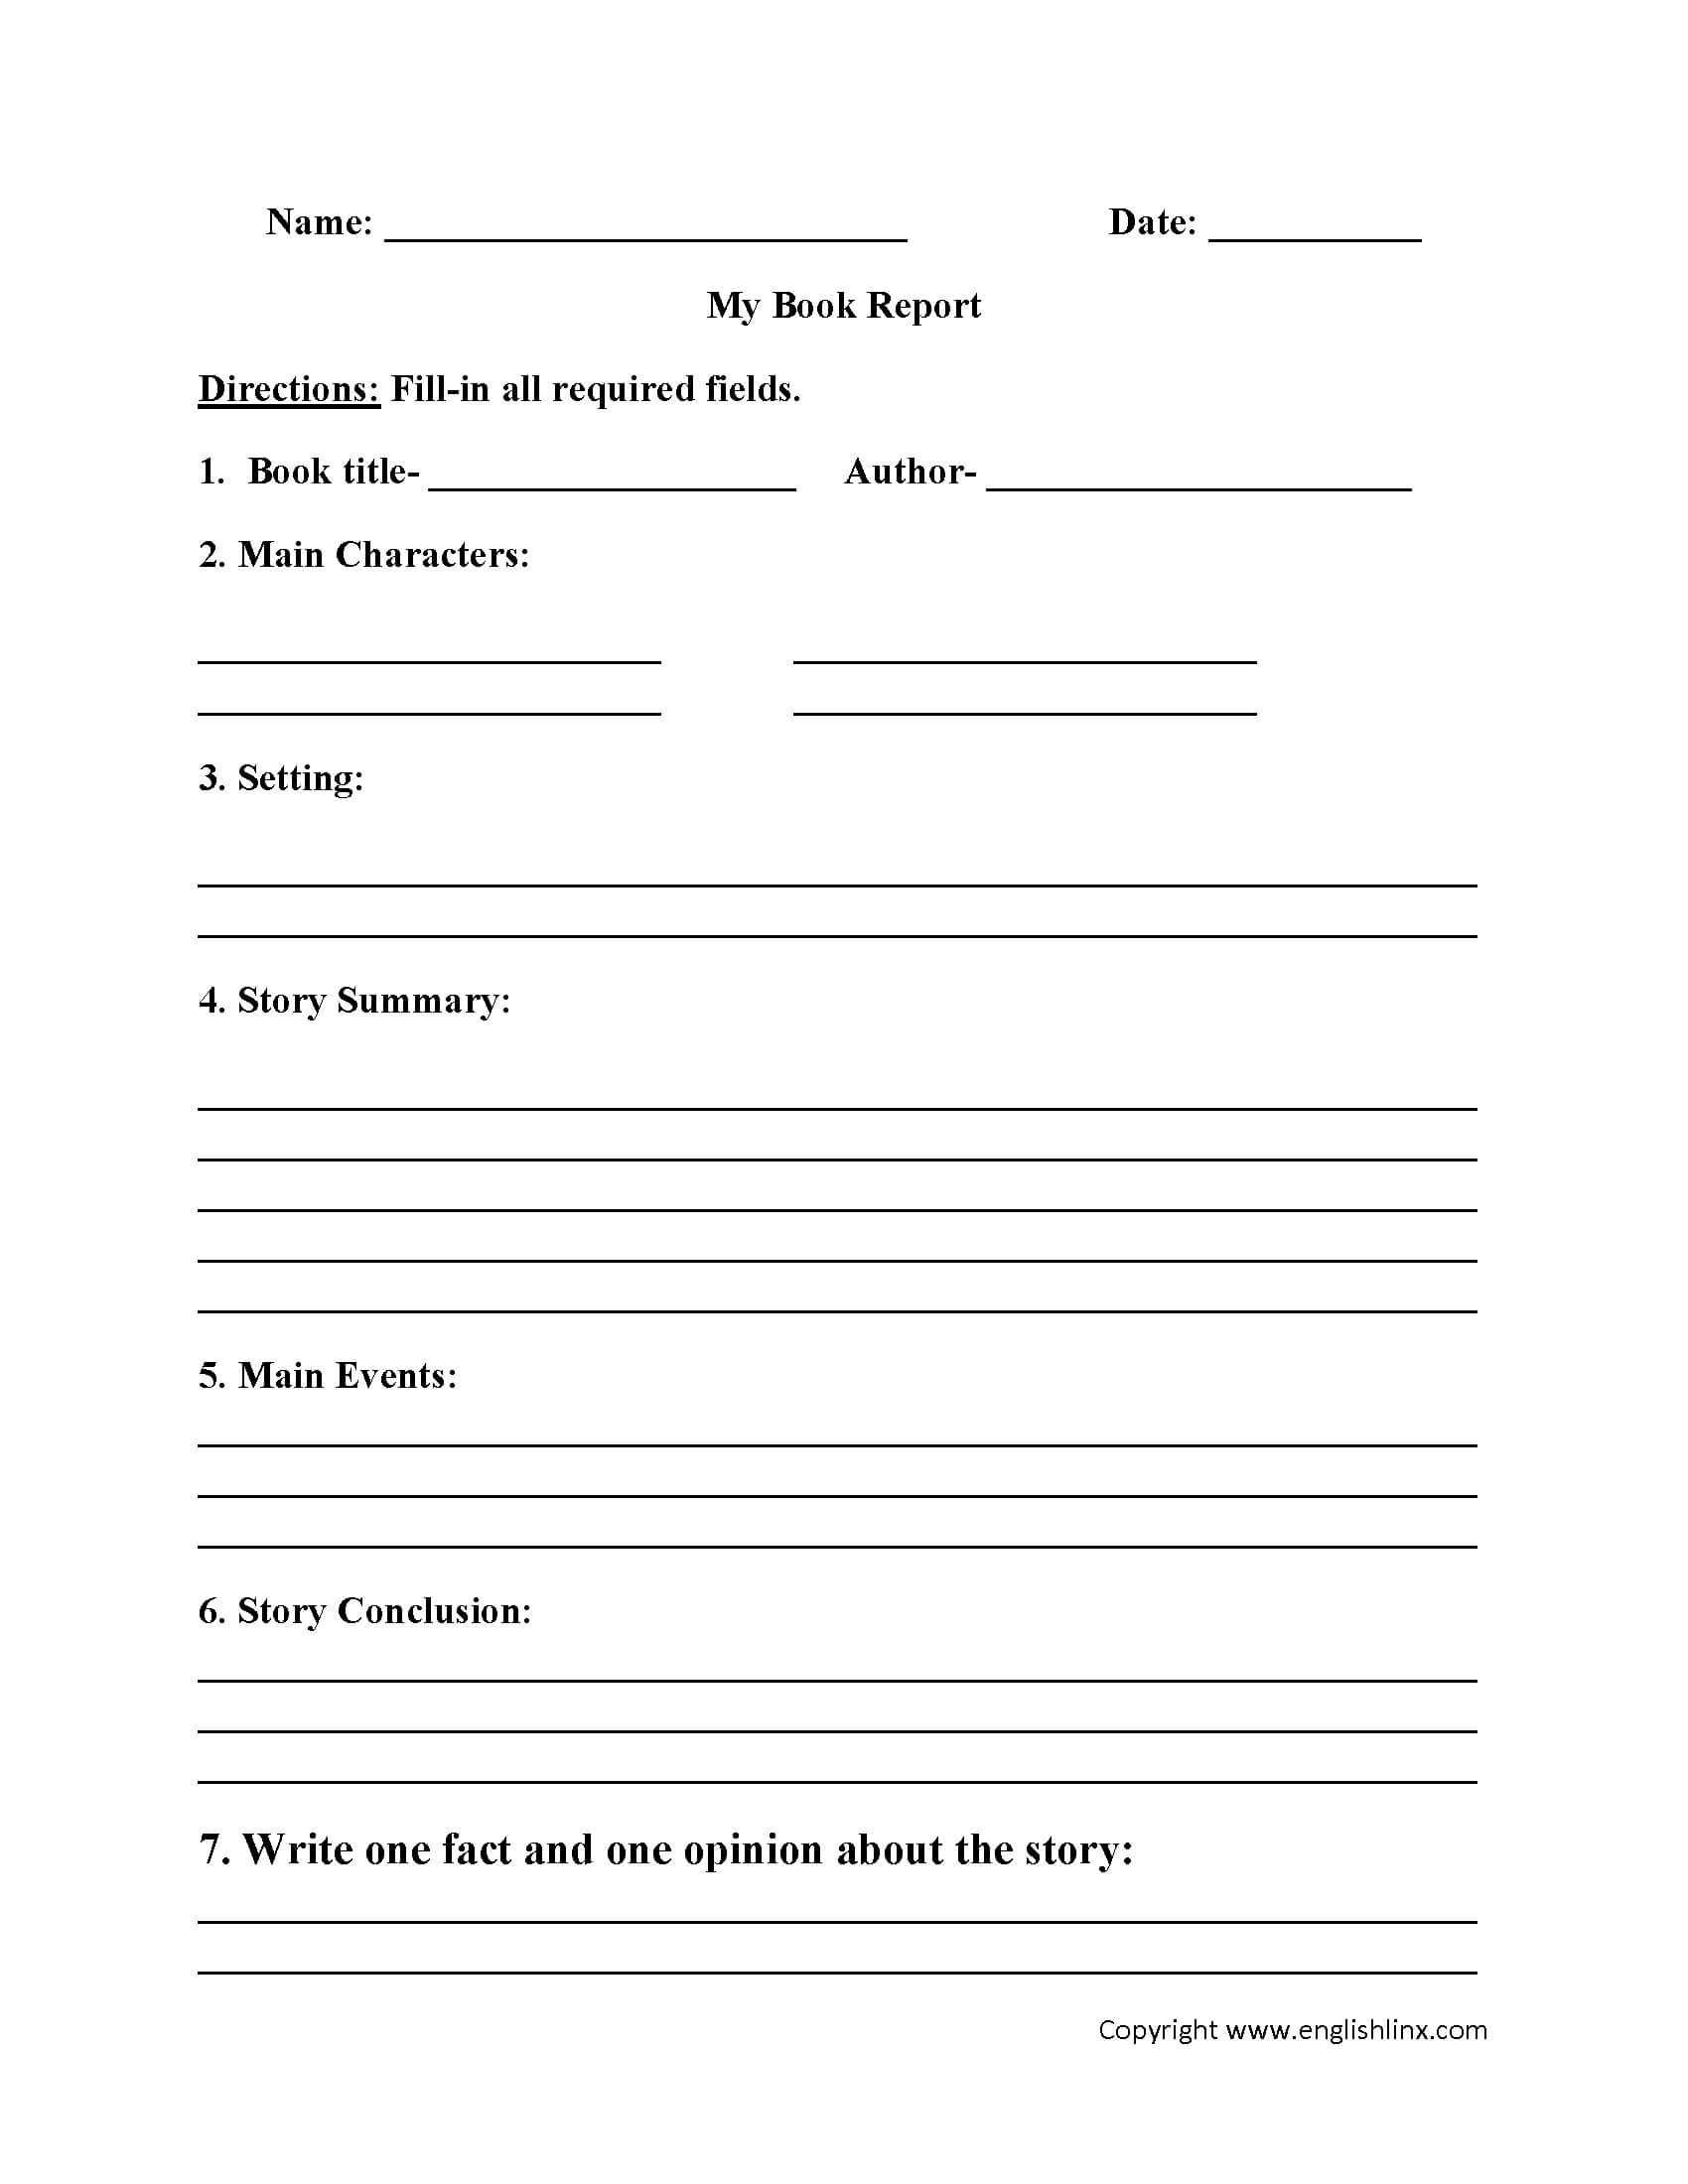 Englishlinx | Book Report Worksheets For 6Th Grade Book Report Template